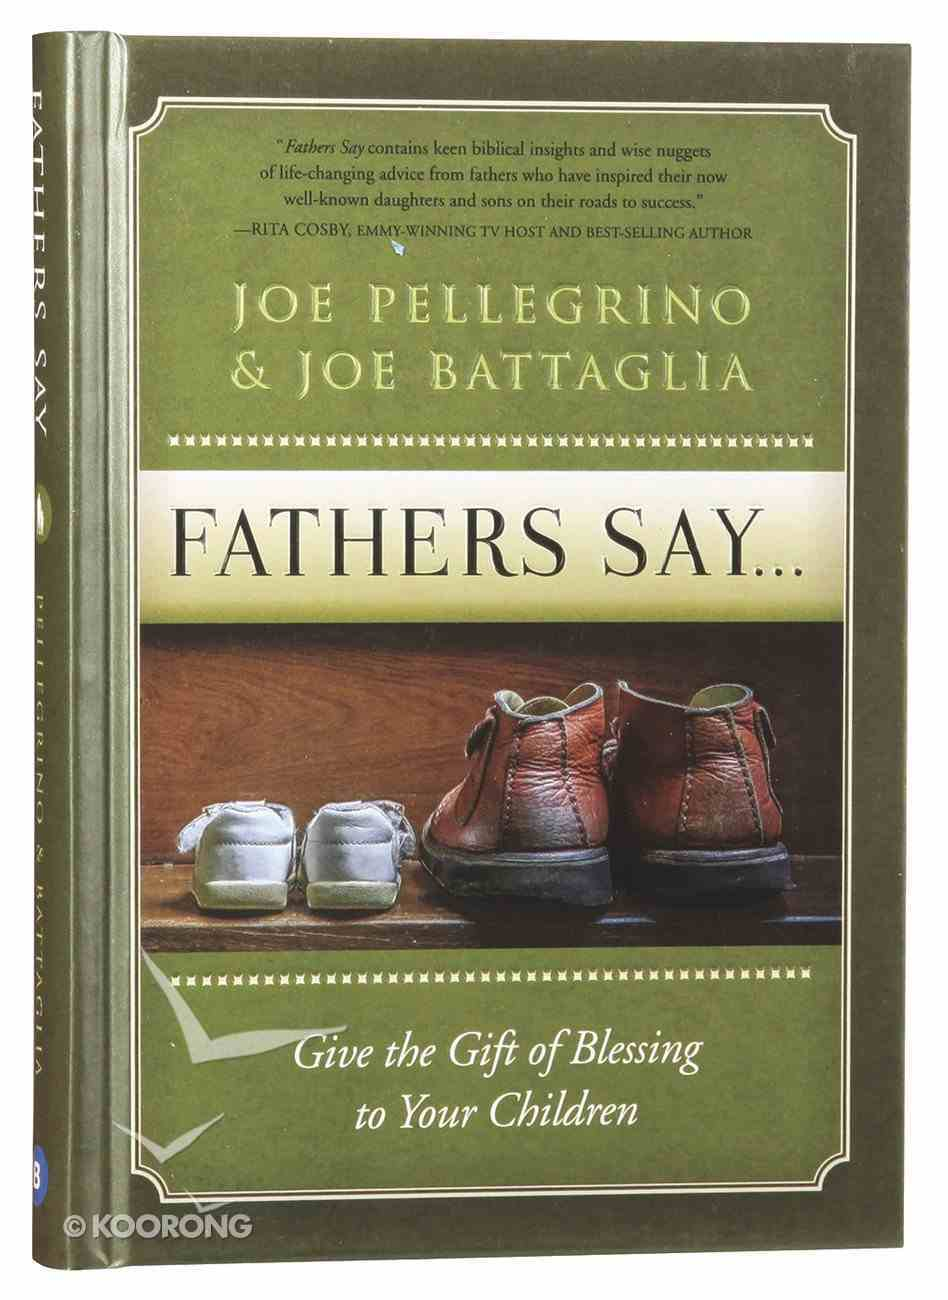 Father's Say: Give the Gift of Blessing to Your Children Hardback